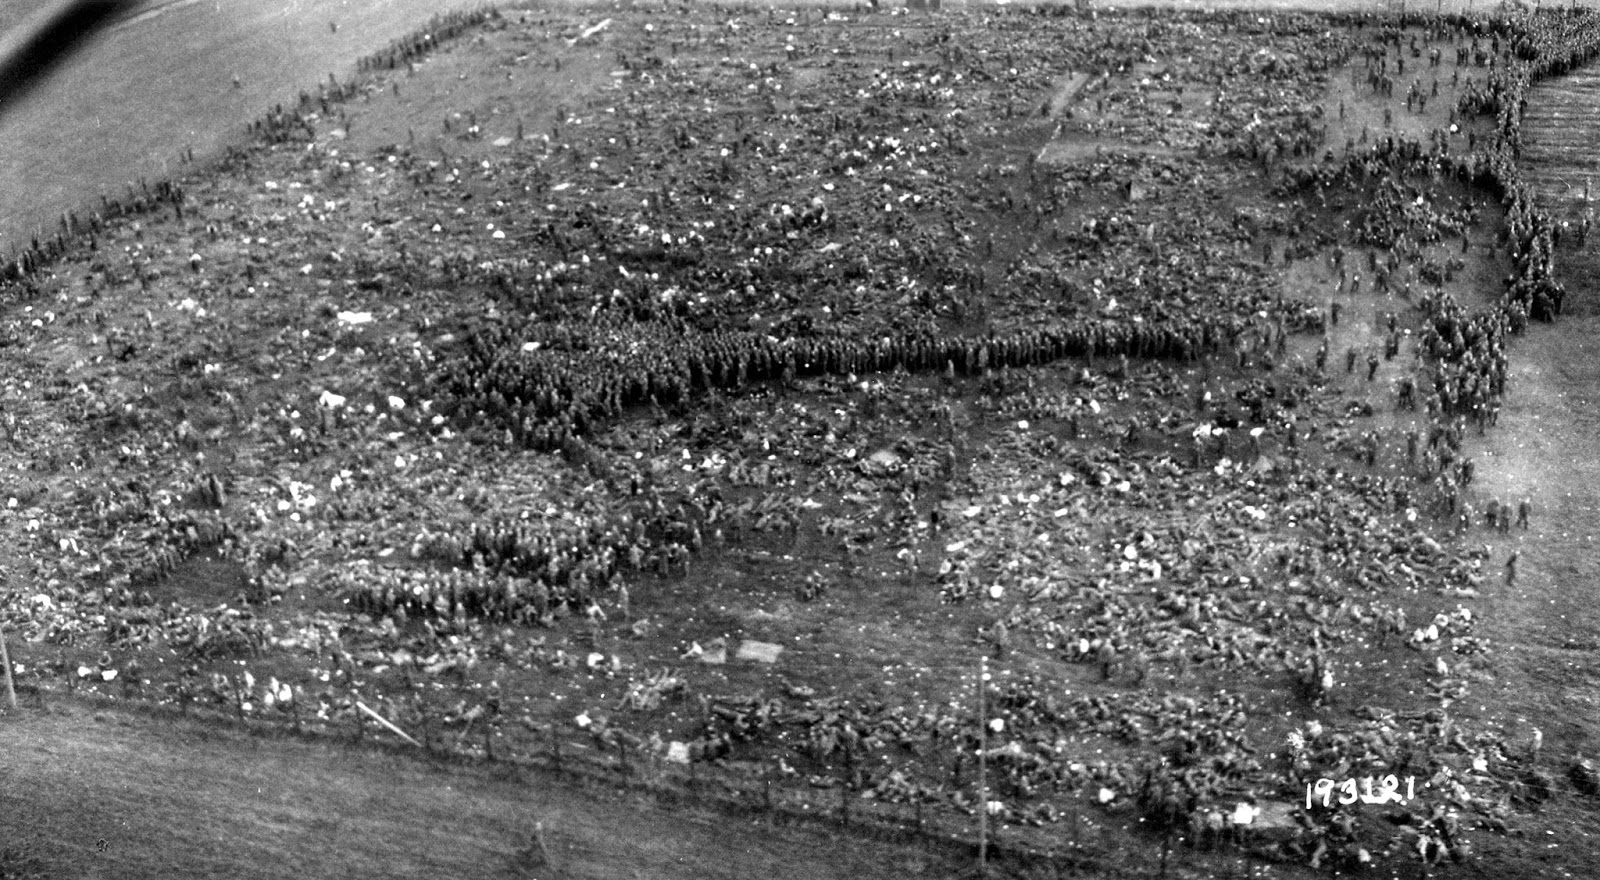 Just some of the tens of thousands of POW's captured after the collapse of the Faliase Pocket are seen from the air Nonant le Pin POW camp.